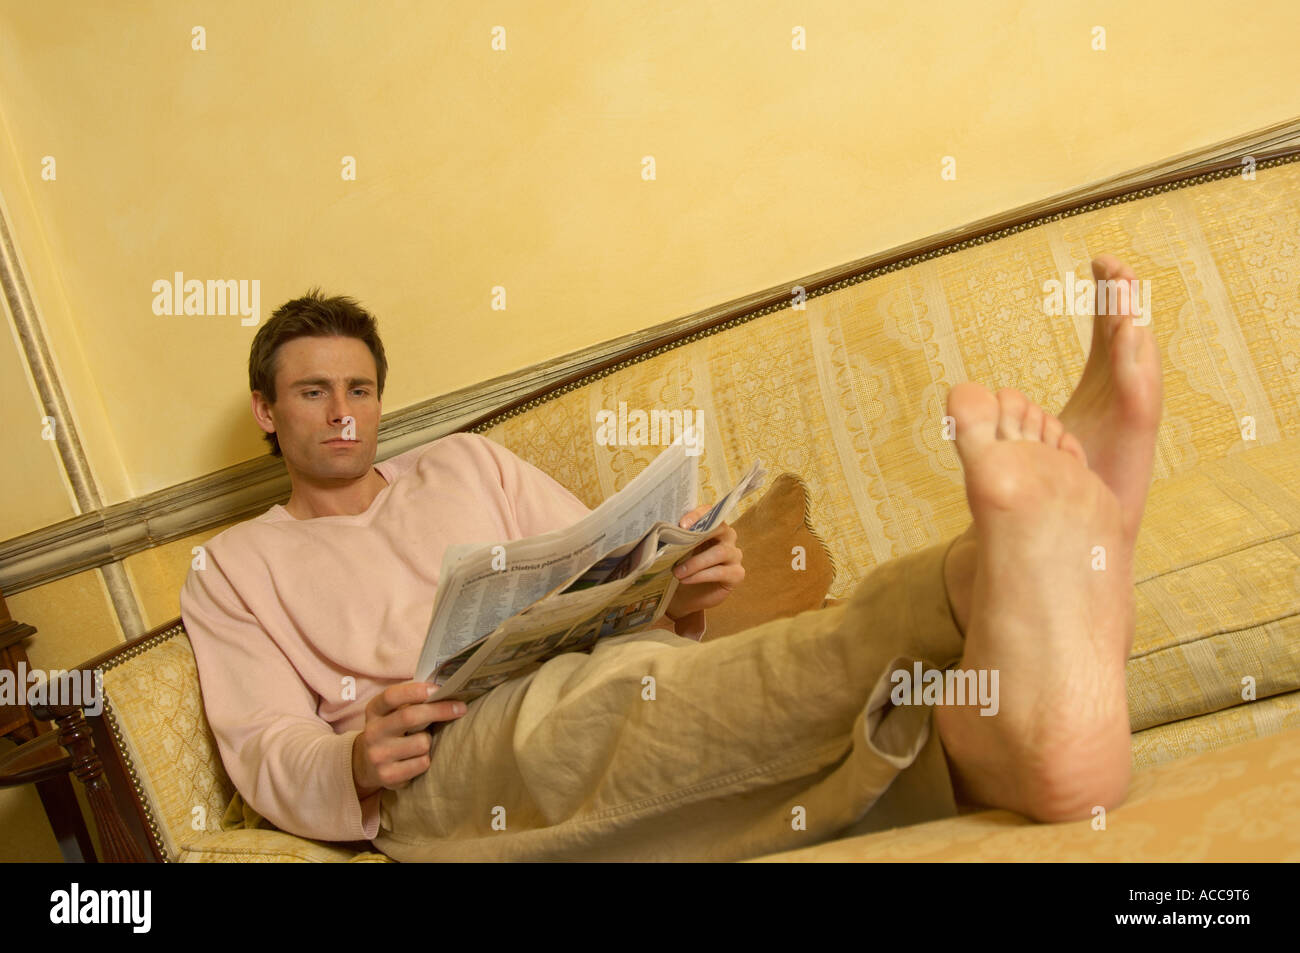 man reading a paper with his feet up on the sofa - Stock Image